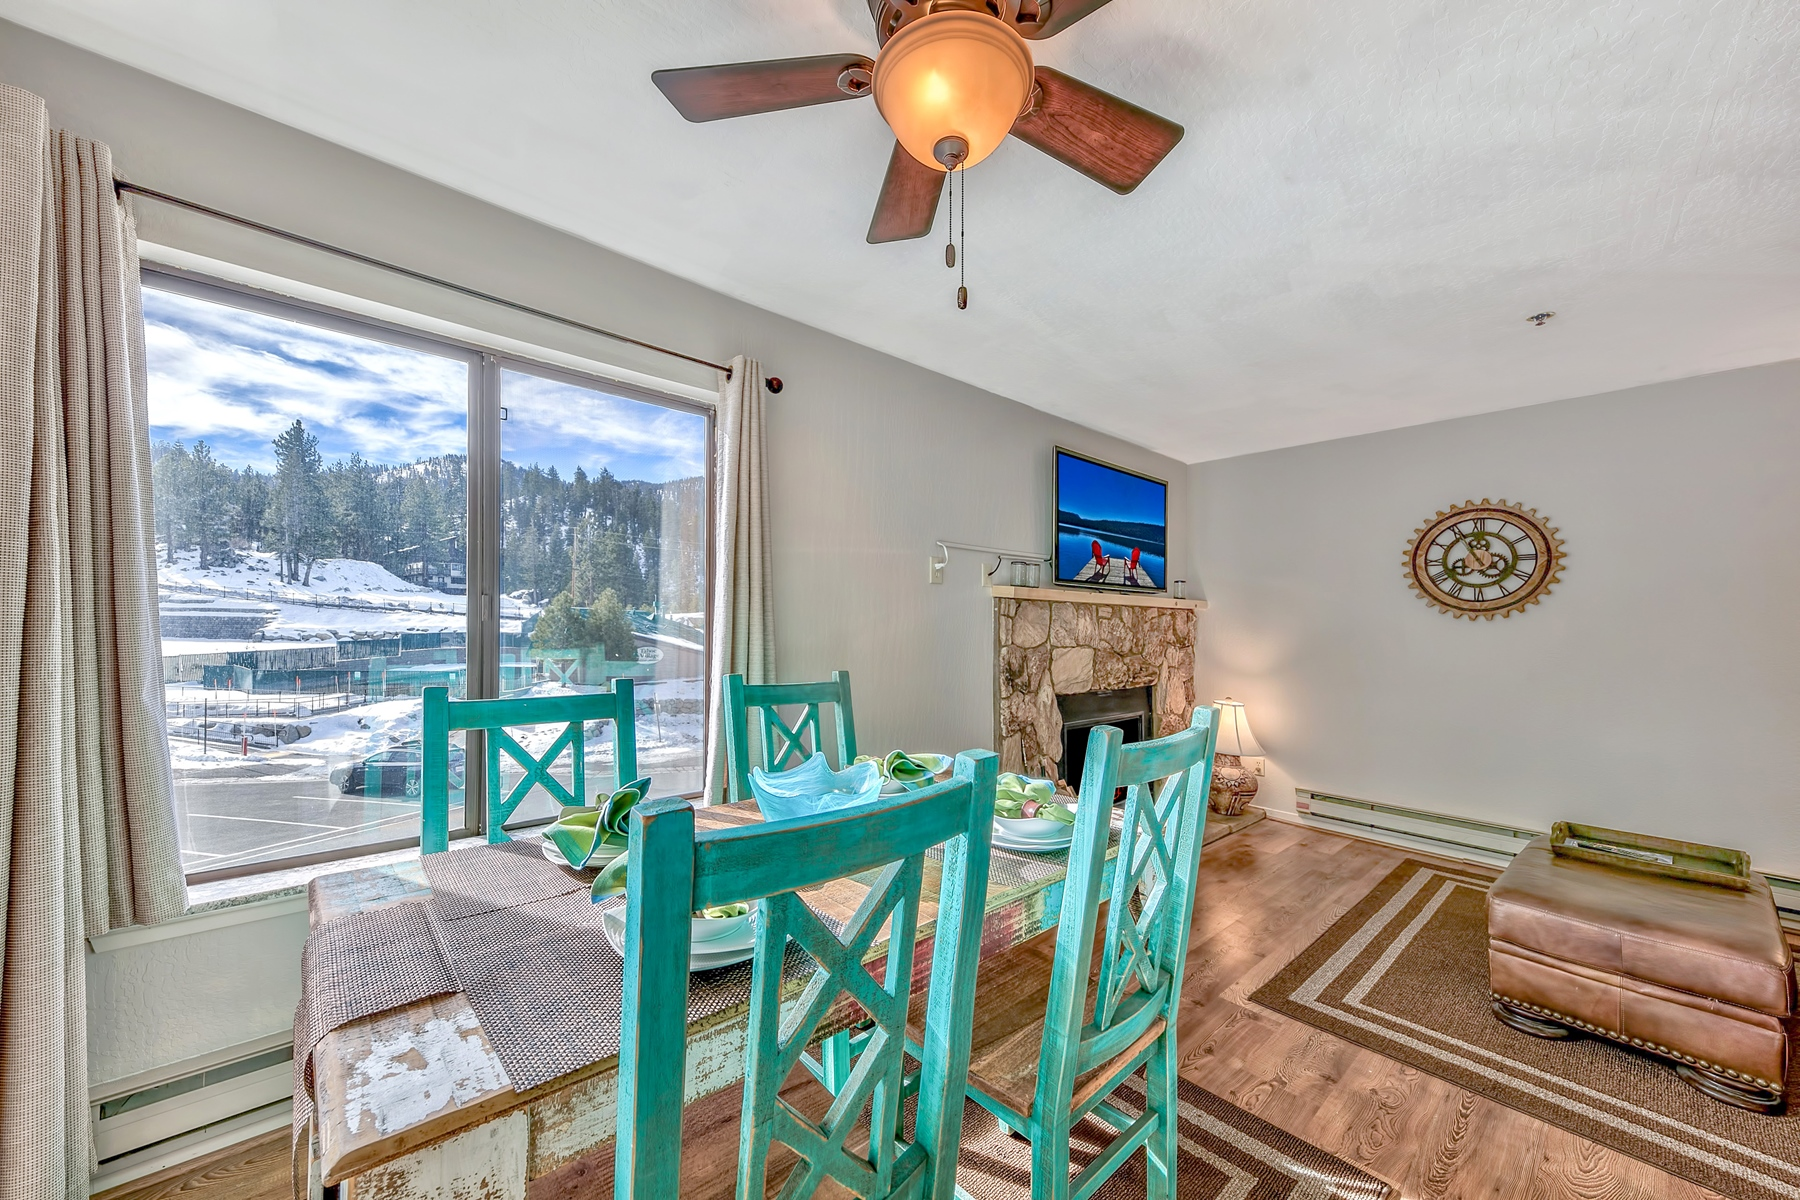 Additional photo for property listing at 313 Tramway Drive #18, Stateline, NV 89449 313 Tramway Drive #18 Stateline, Nevada 89449 United States